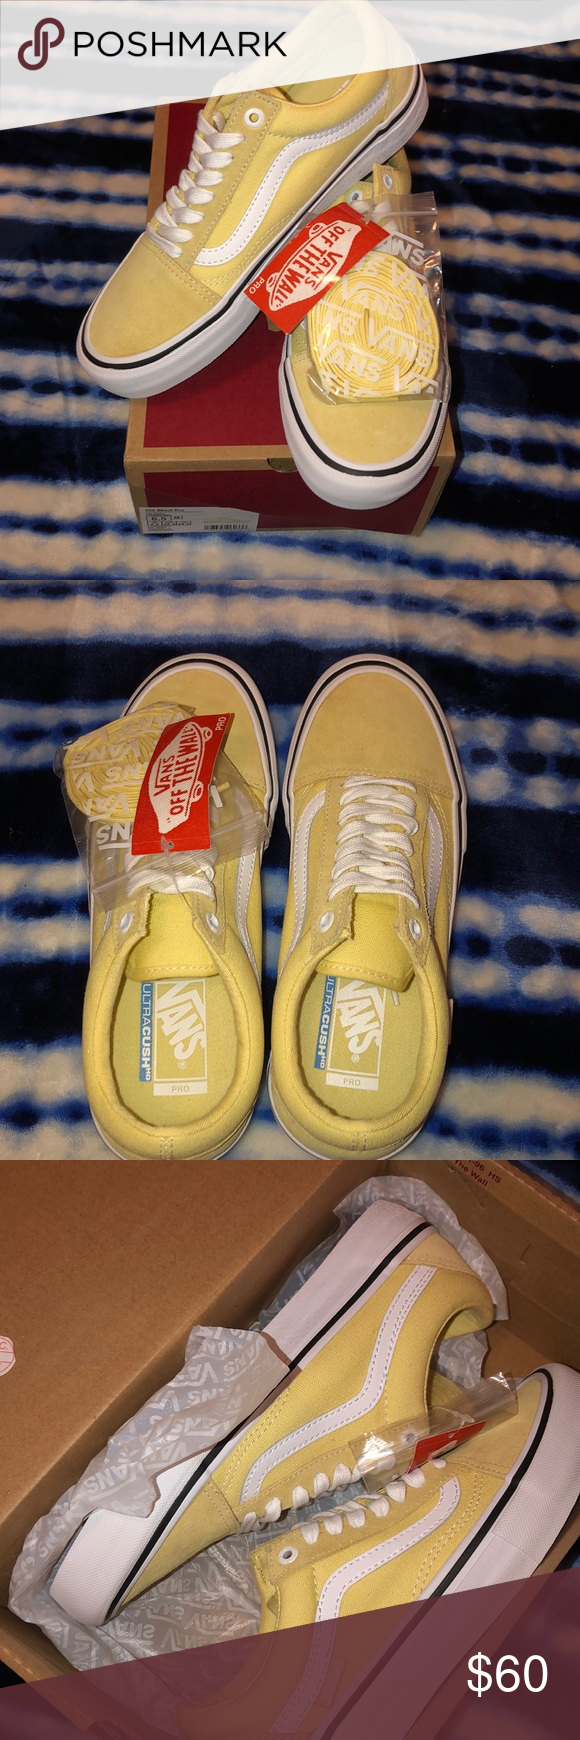 Vans Old Skool Pro Pale Banana & White Skate Shoes